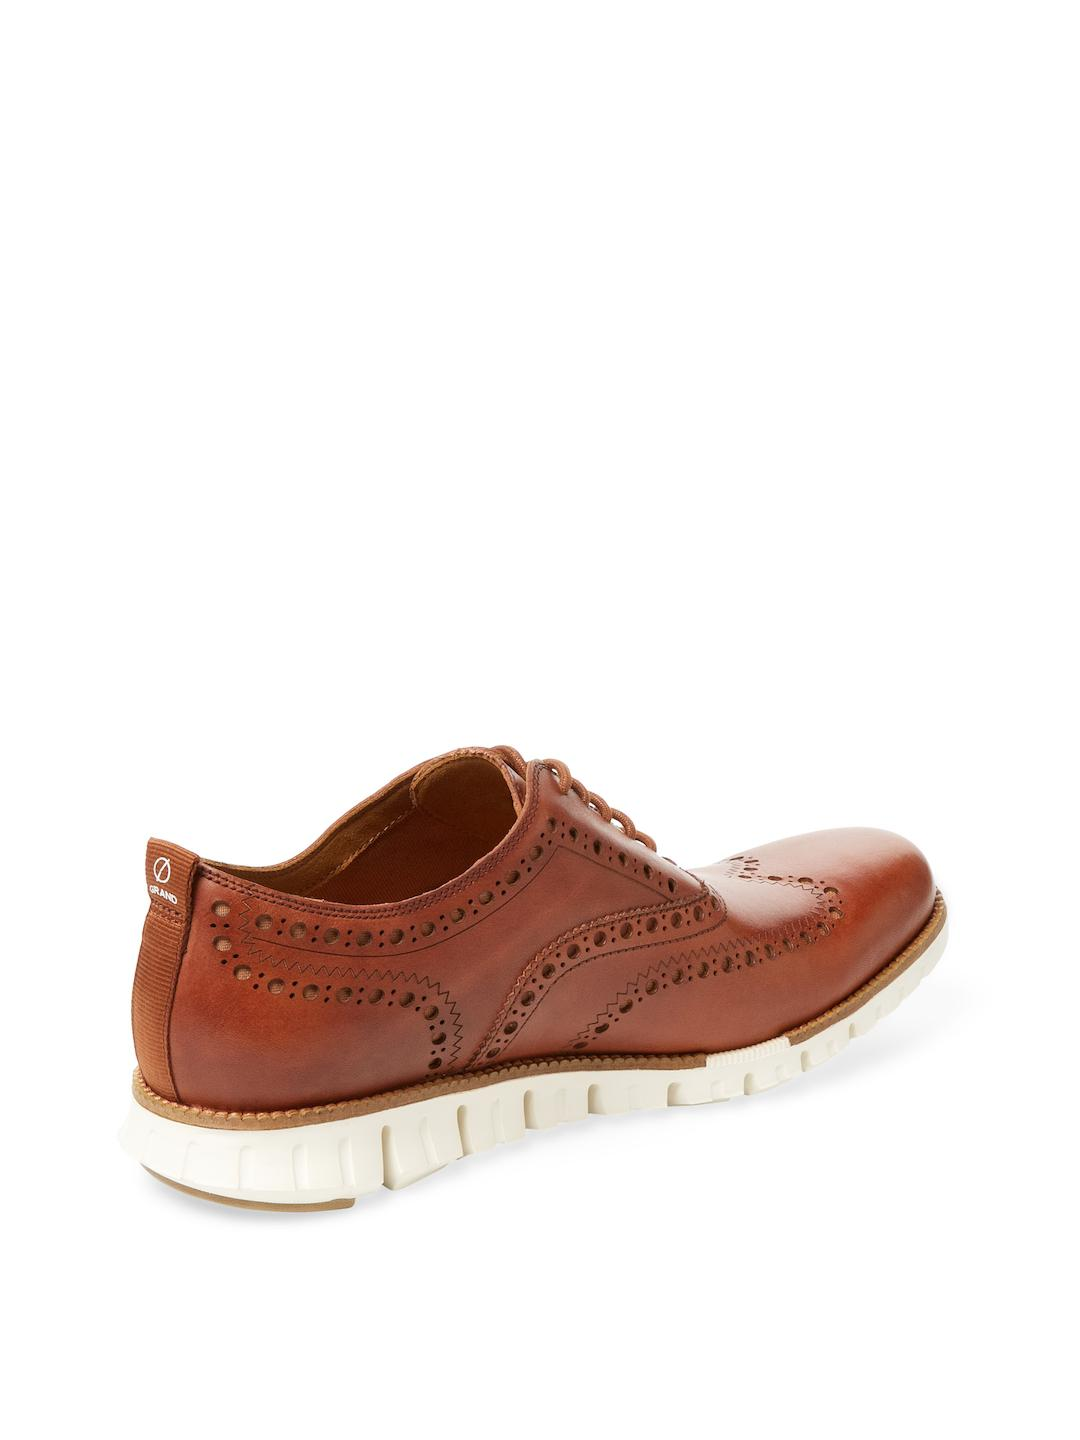 Cole Haan Leather Zerogrand Wngox Clii Sneaker In Brown